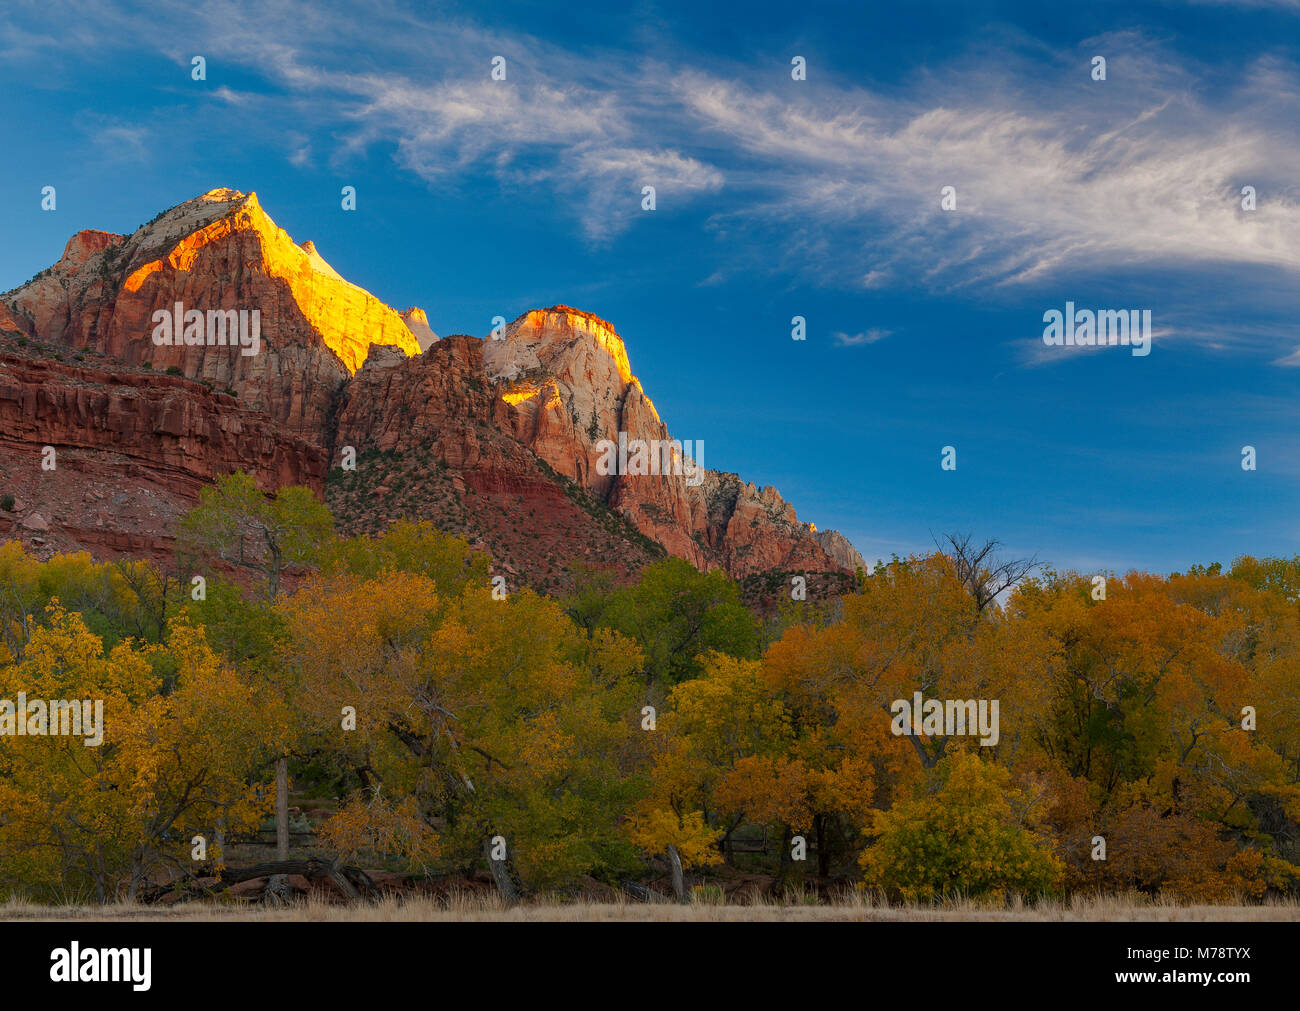 Lever du soleil, la Sentinelle, Zion National Park, Utah Photo Stock